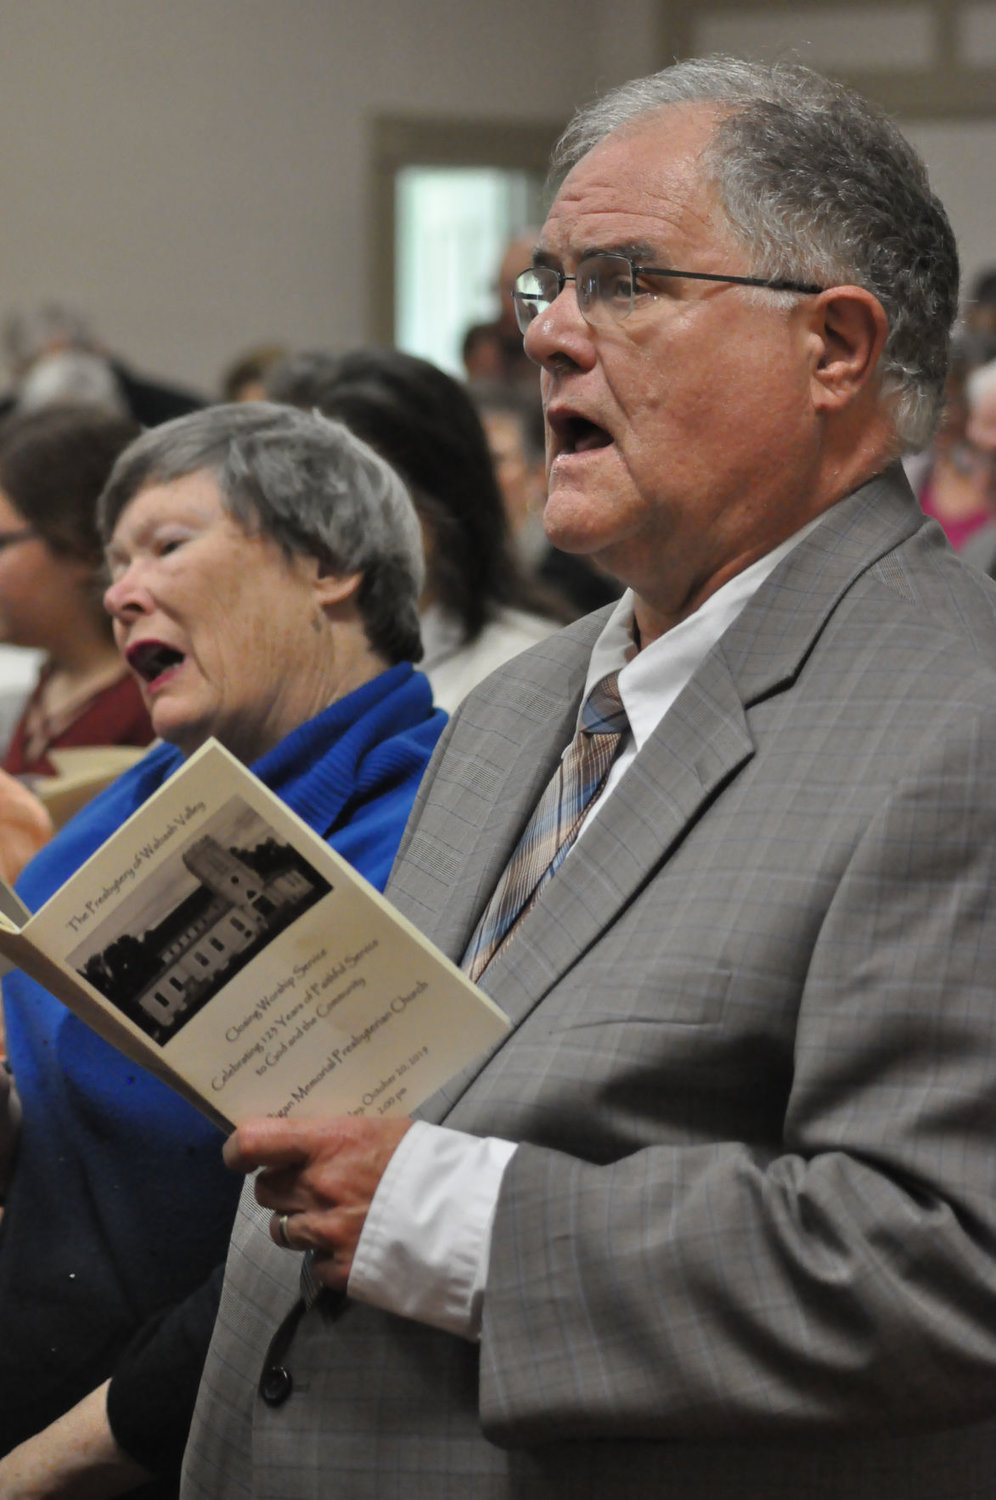 Mark Strothman and his wife, Sharon Maddox, sing during the final worship service Sunday at Milligan Memorial Presbyterian Church. Strothman was pastor of the church in the 1980s.